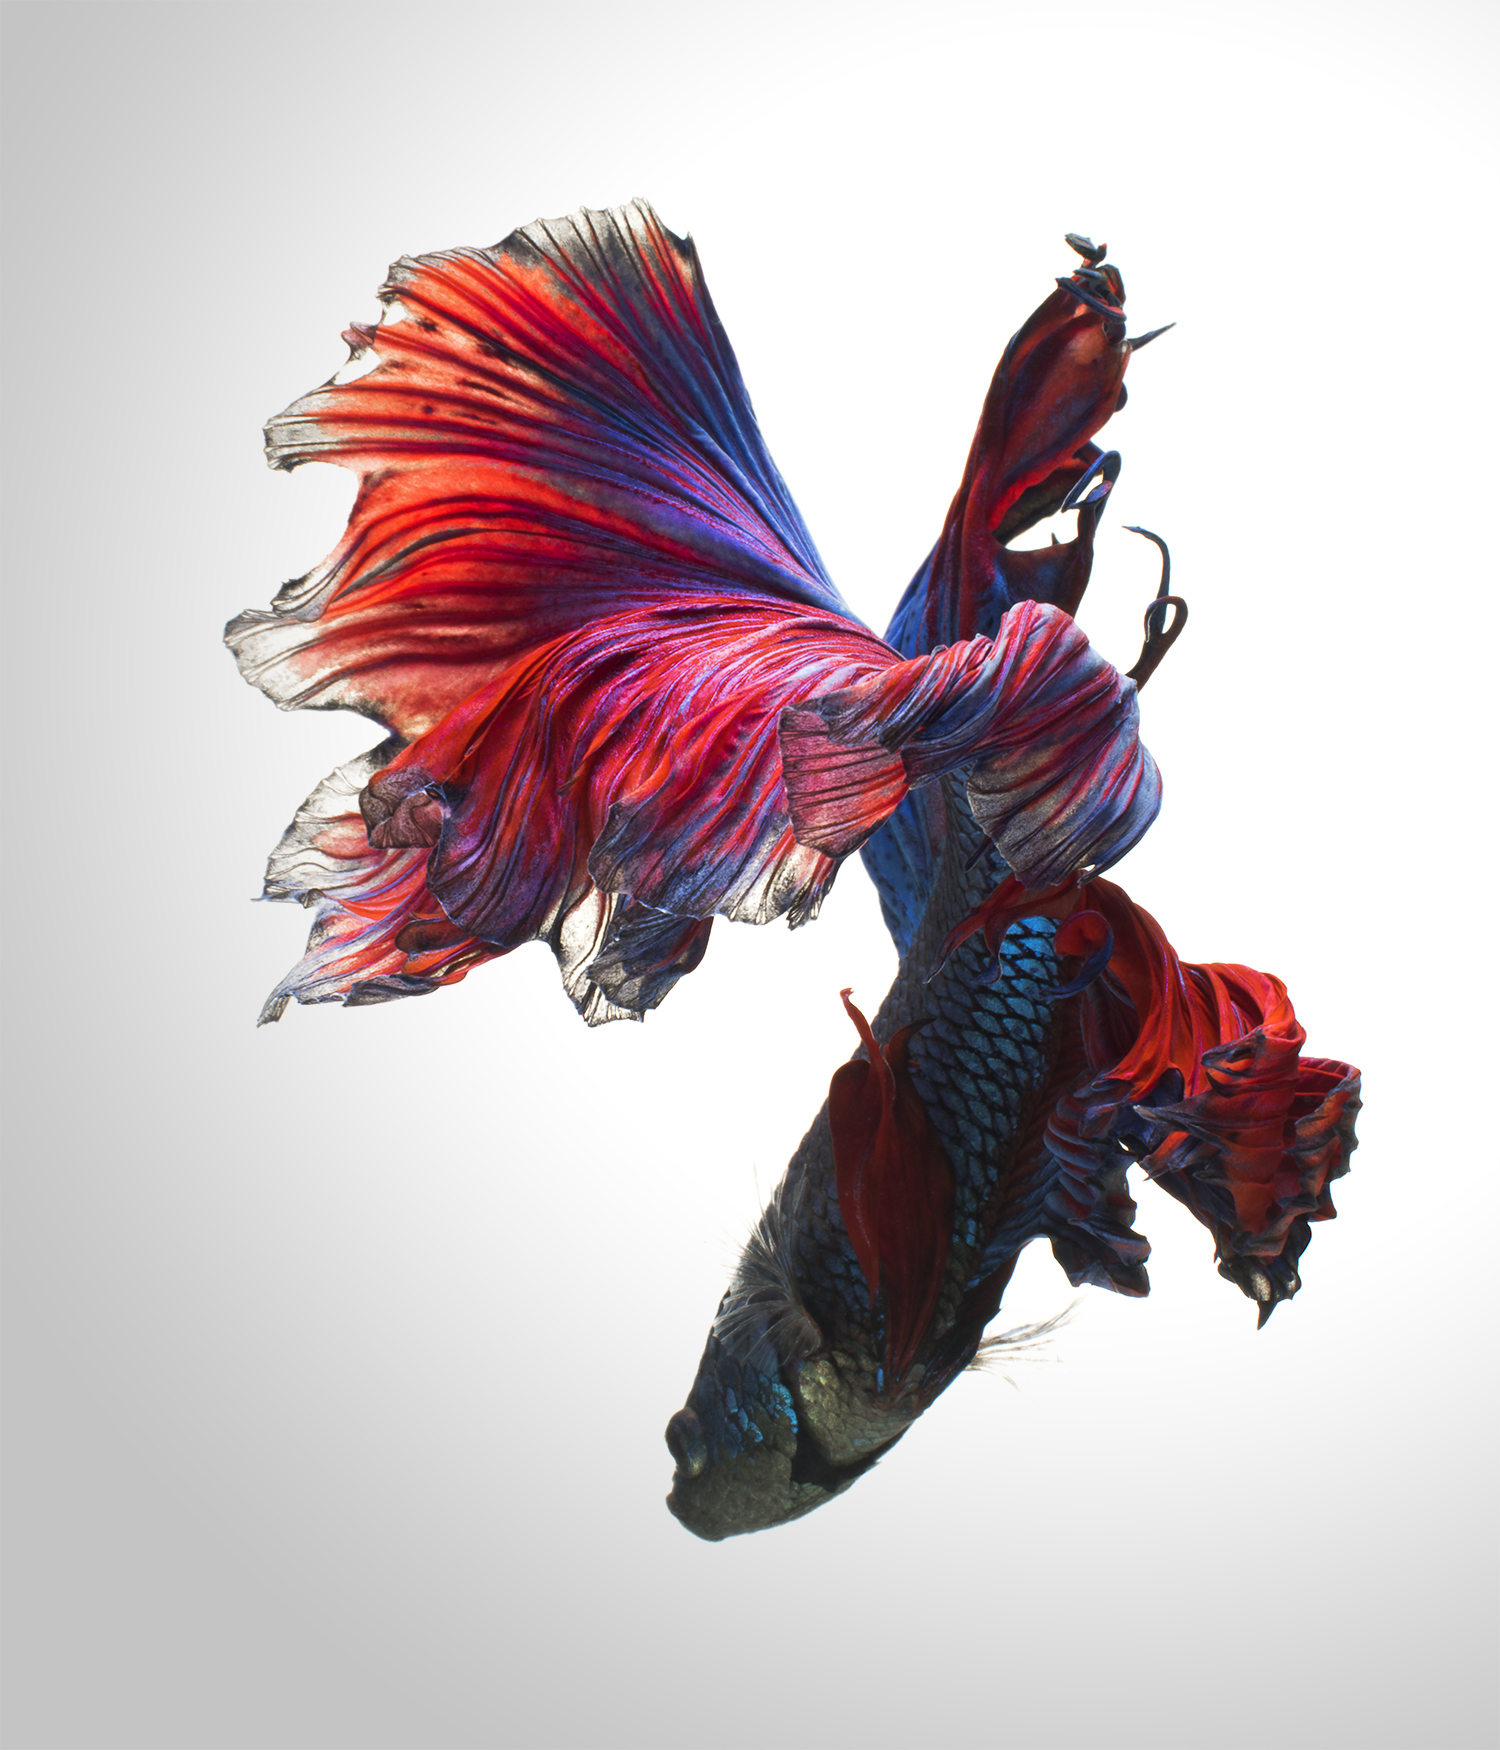 Betta Fish Imitate Elegantly Posed Dancers In New Portraits By